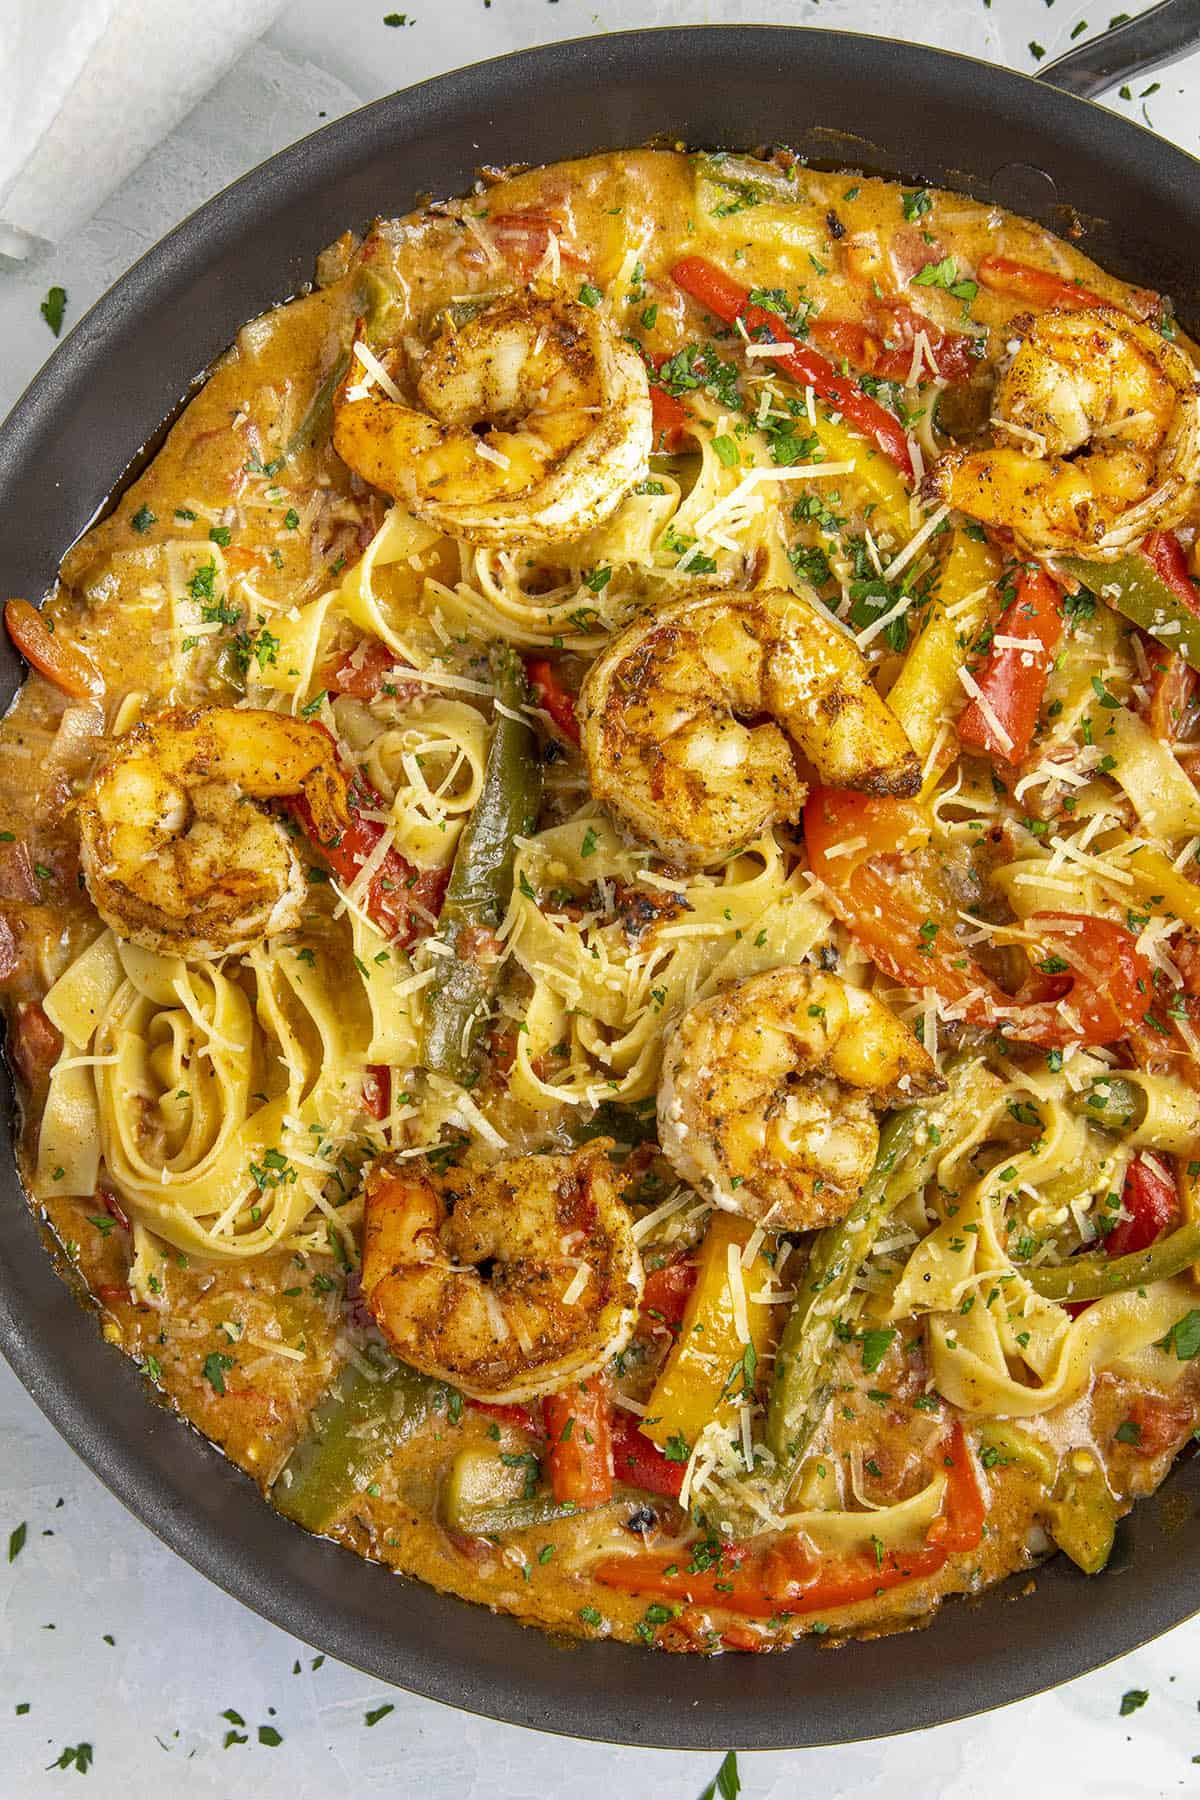 Rasta Pasta with shrimp in a pan